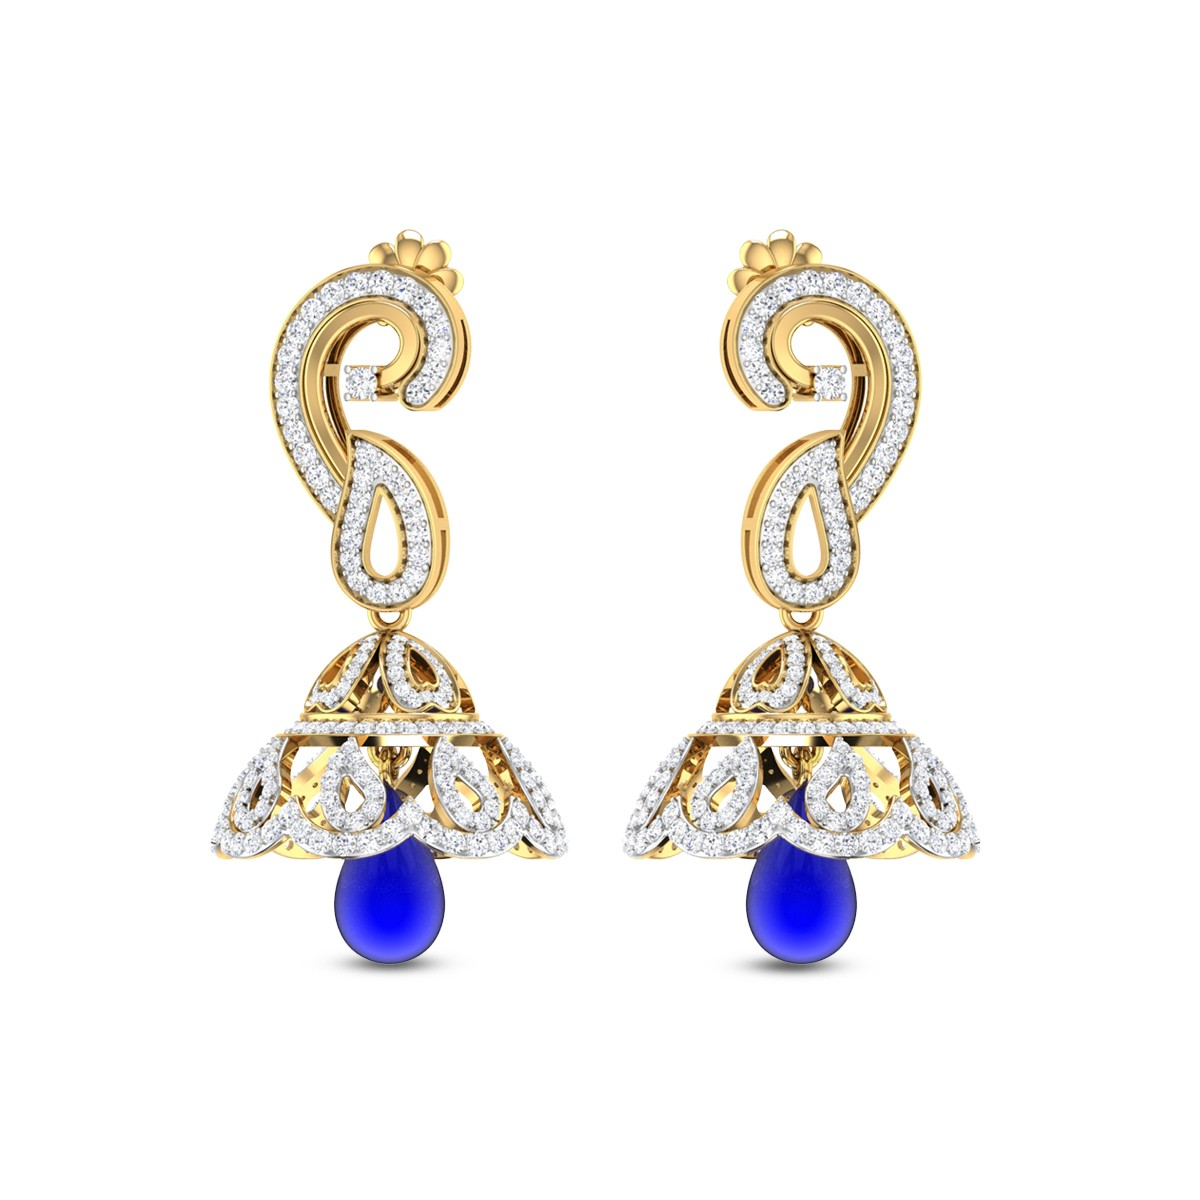 Laurel Diamond Earrings